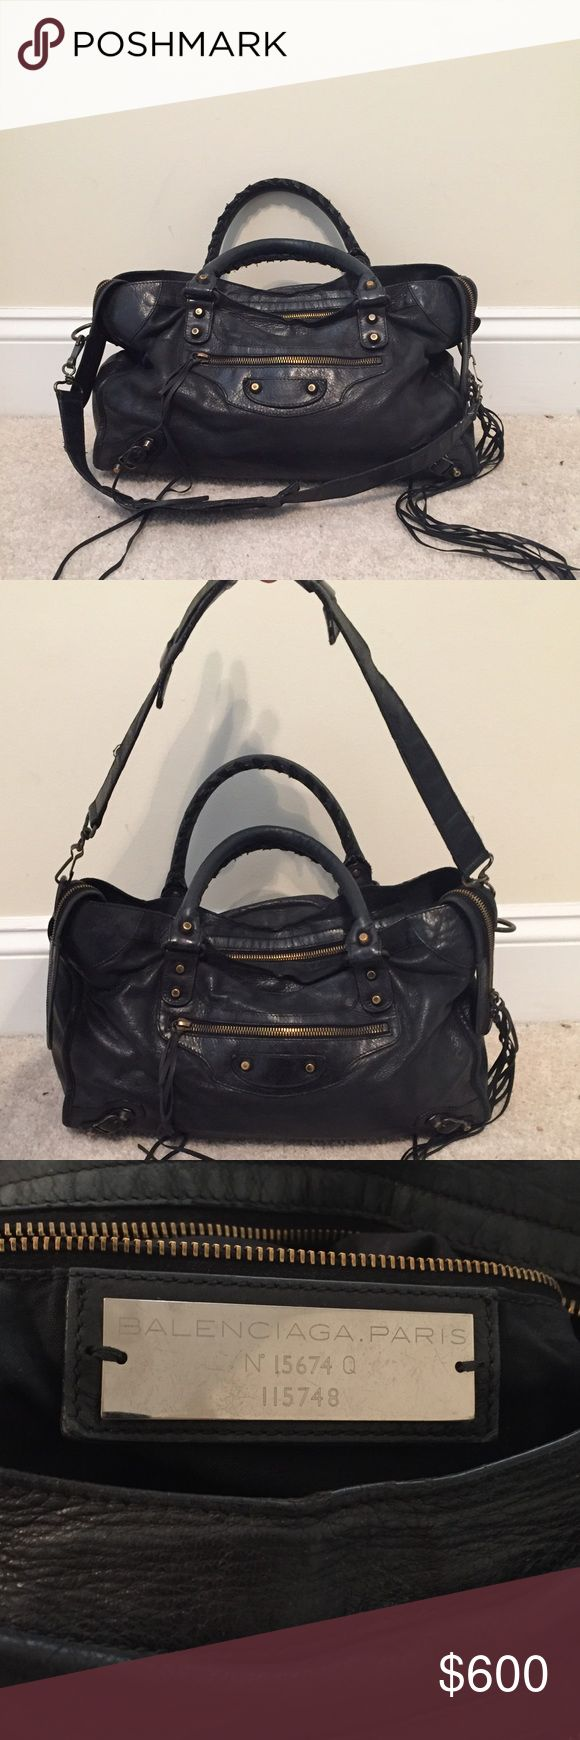 Balenciaga Handbag Black Balenciaga city handbag with gold colored hardware and tassels. All zippers work. Comes with shoulder strap (pictured), no dust bag. Leather is broken in, was kept routinely conditioned by a cobbler. Feel free to message w questions! Balenciaga Bags Shoulder Bags